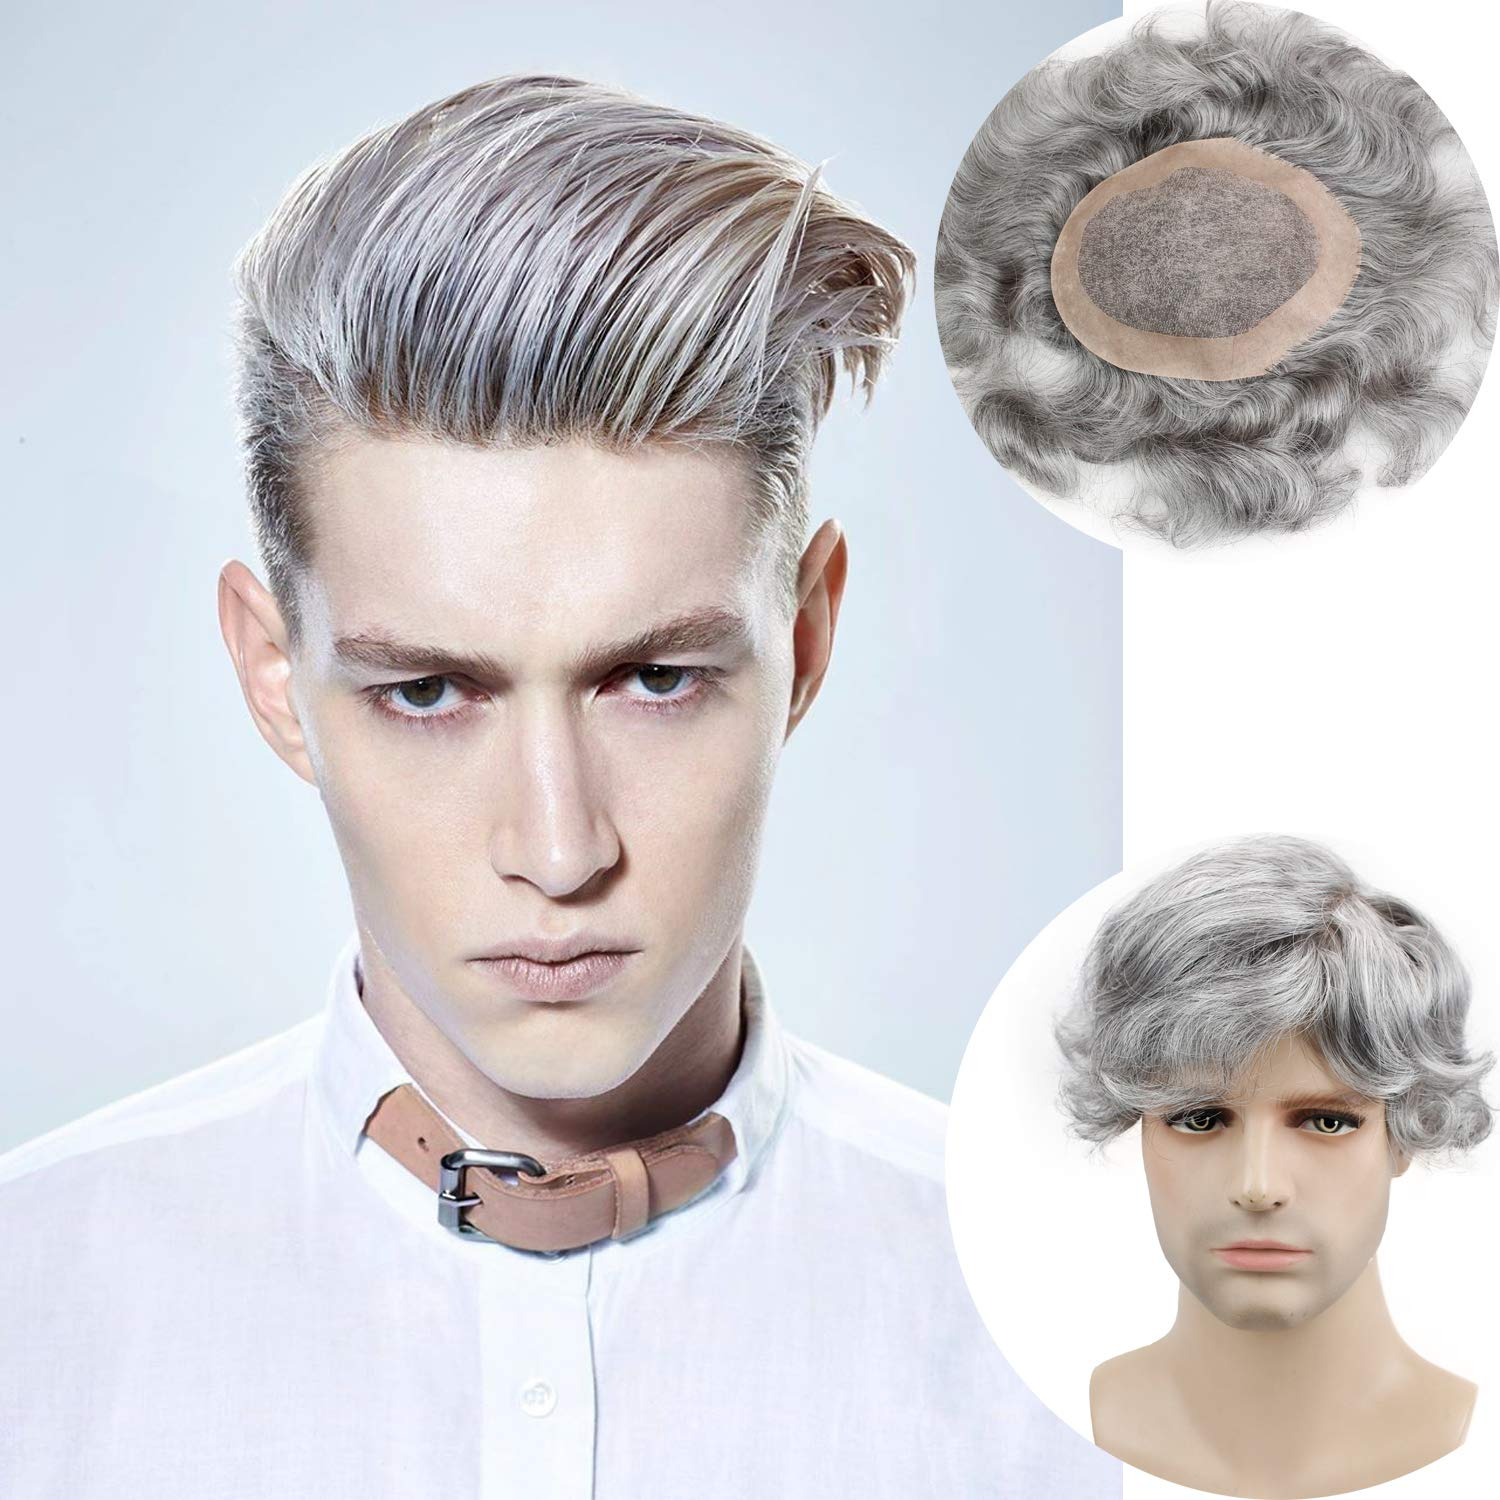 Men's Toupee European Human Hair Replacement Wigs Mono Lace With PU Around 6